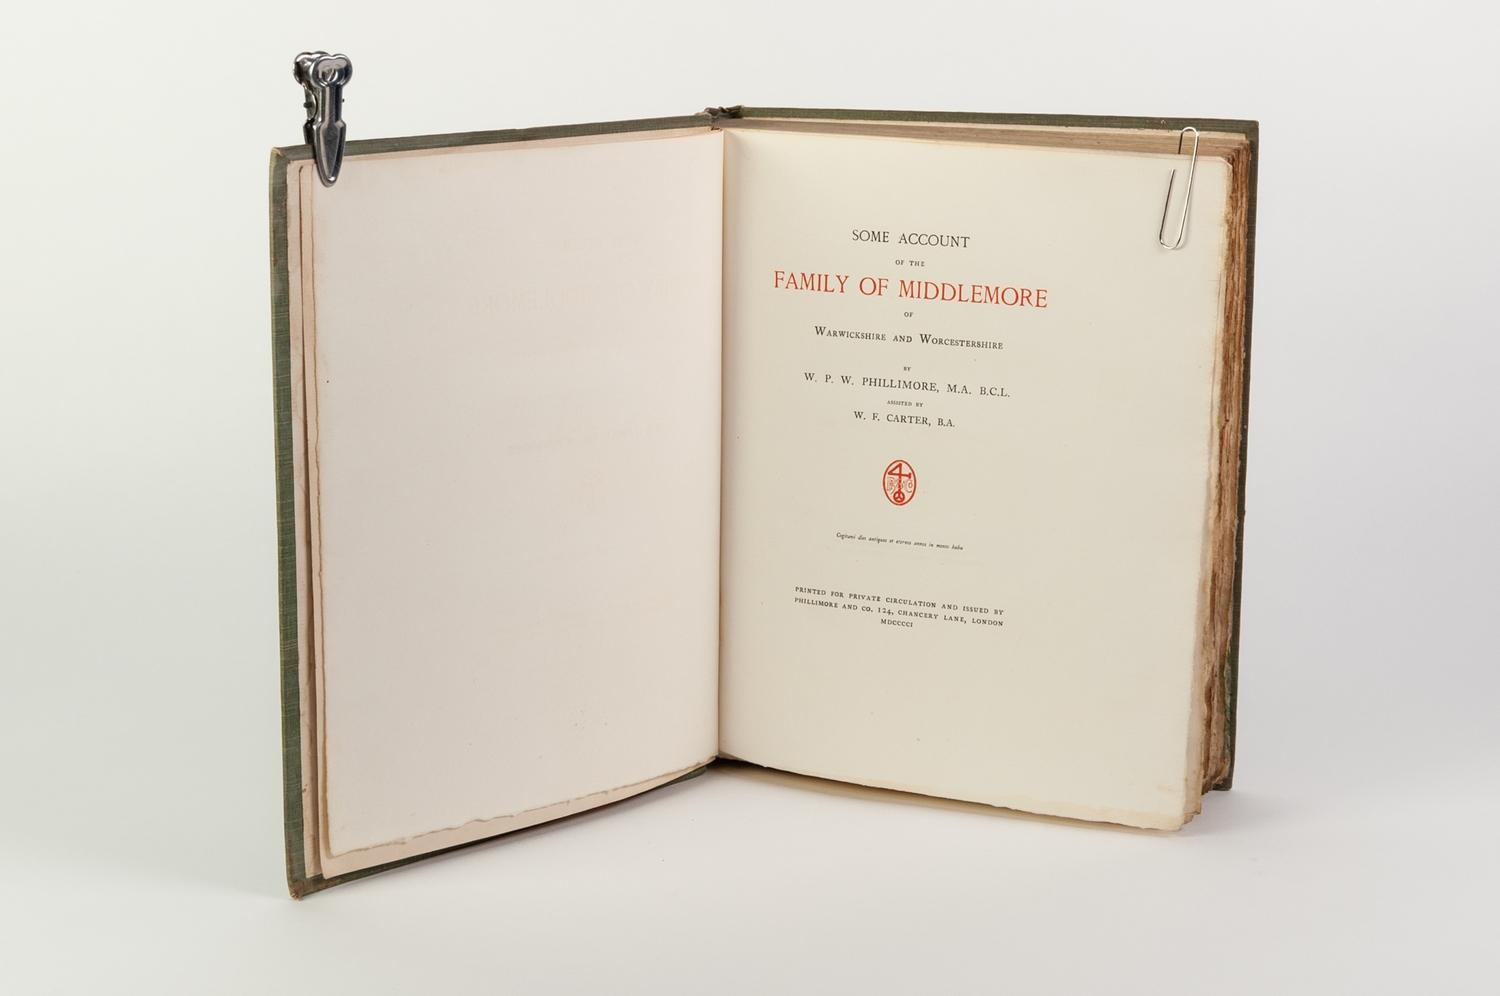 Lot 110 - GENEAOLOGY. Phillimore & Carter- Some Accounts of the Family of Middlemore of WARWIRCKSHIRE AND